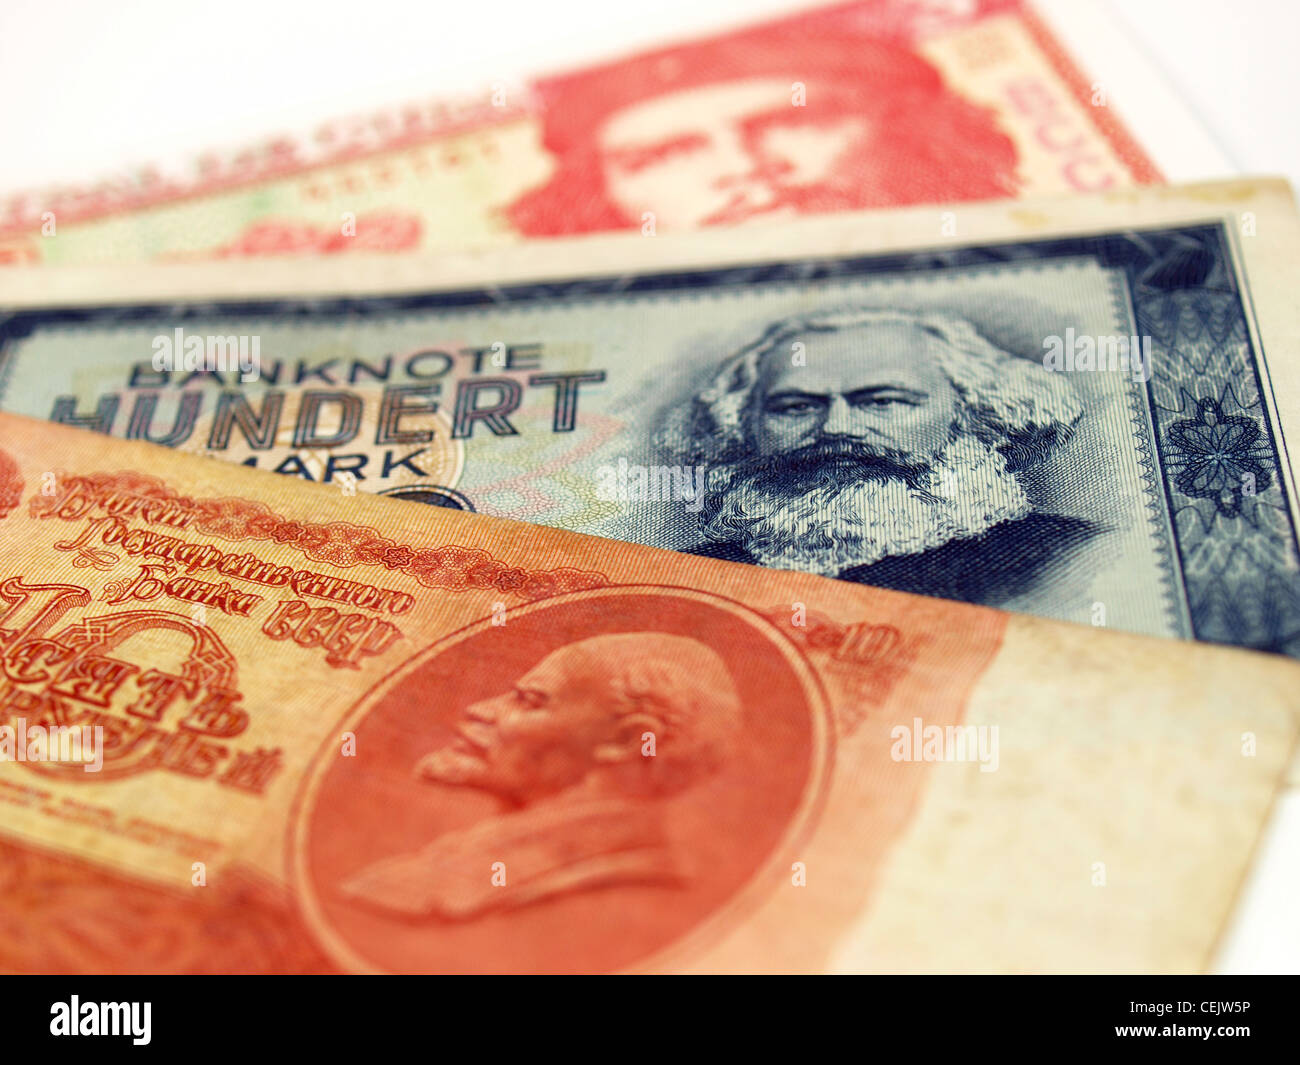 Money from the Communist countries: CCCP SSSR DDR Cuba - Stock Image